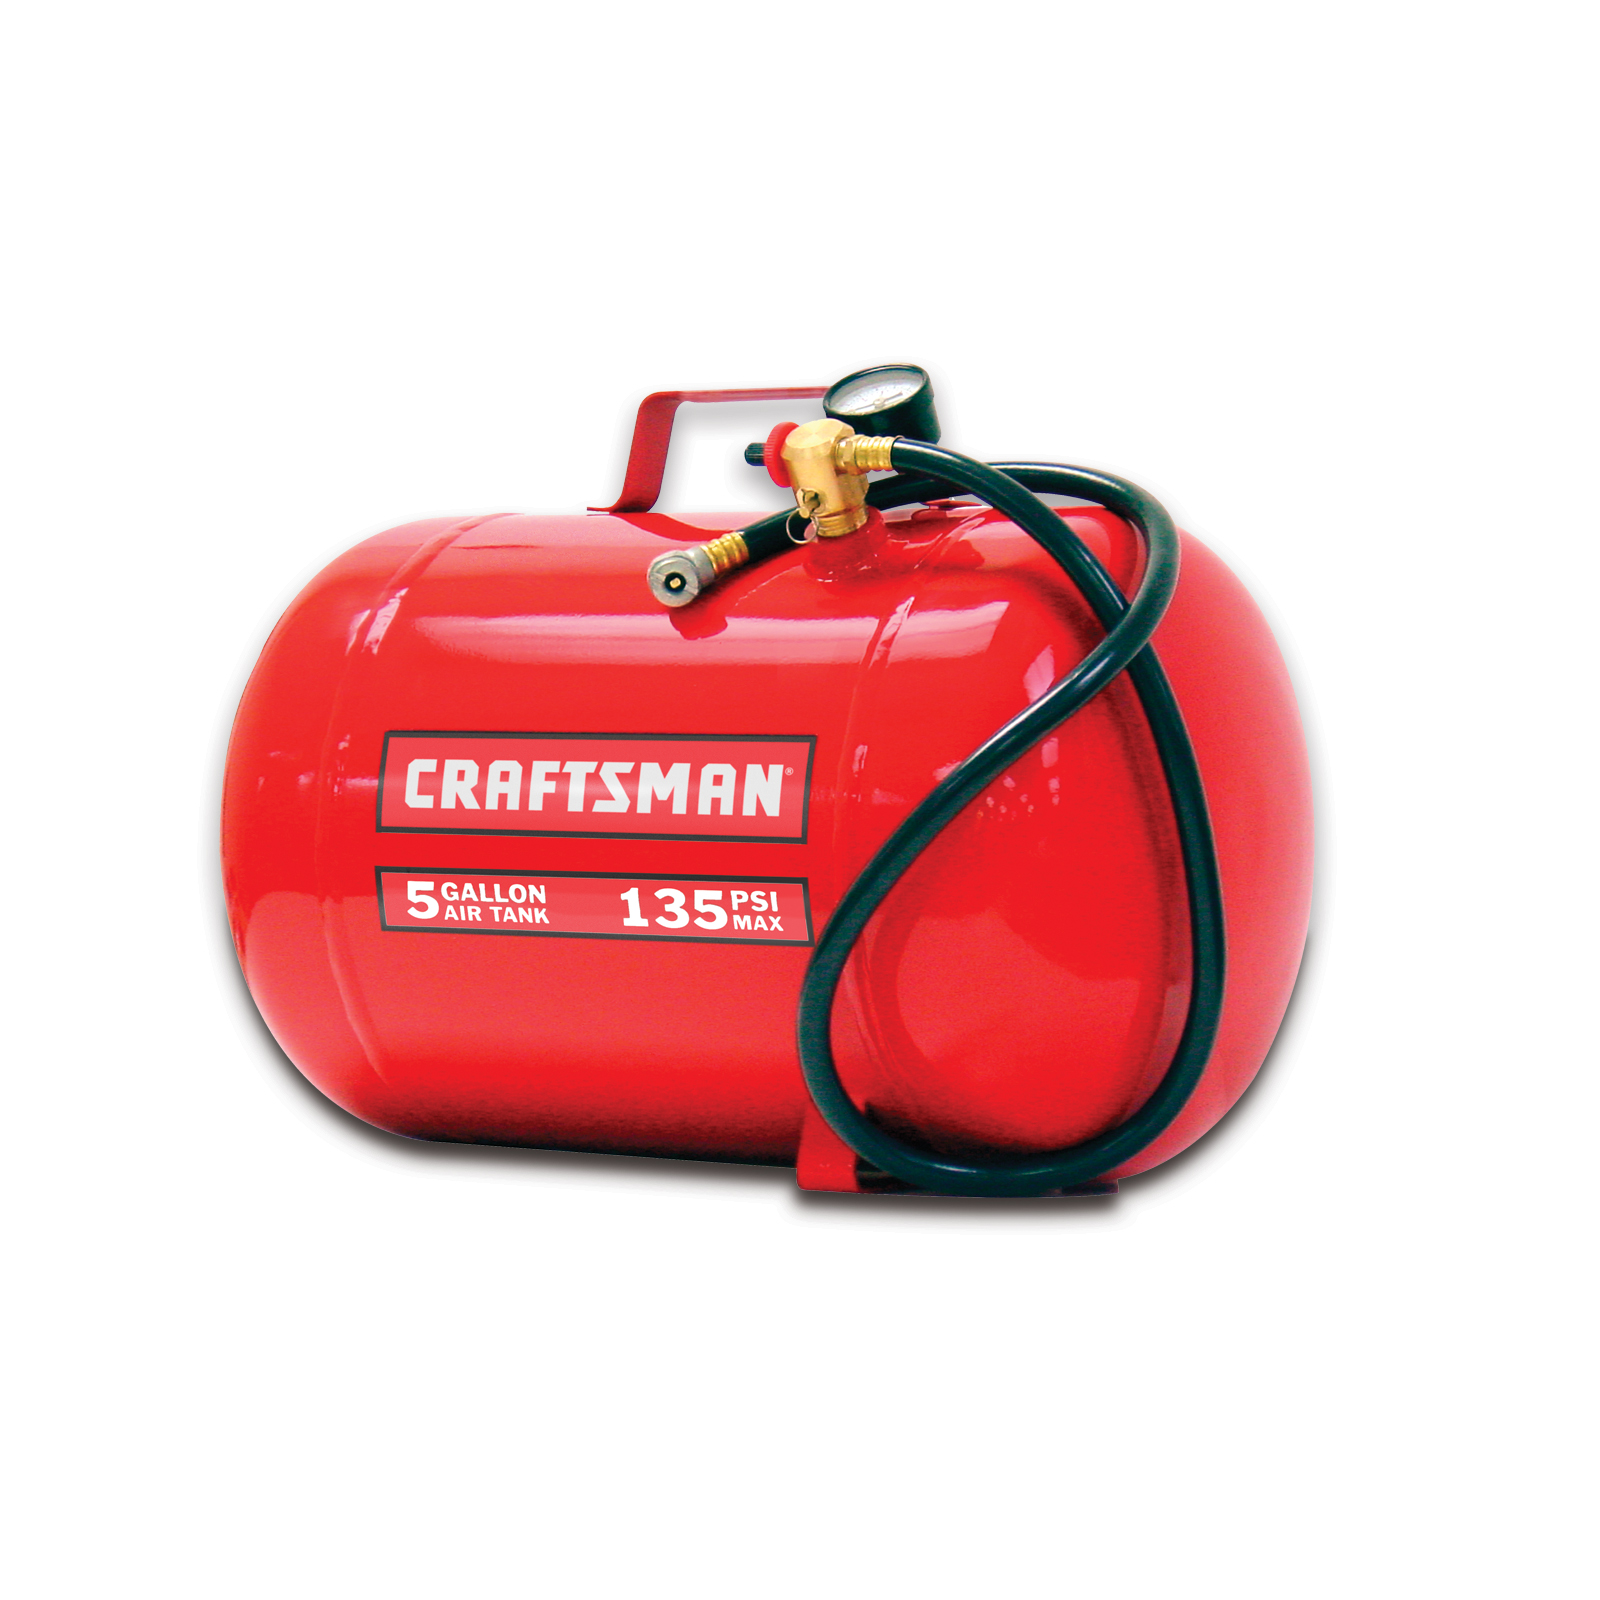 Craftsman 5 Gallon 135 PSI Horizontal Air Tank